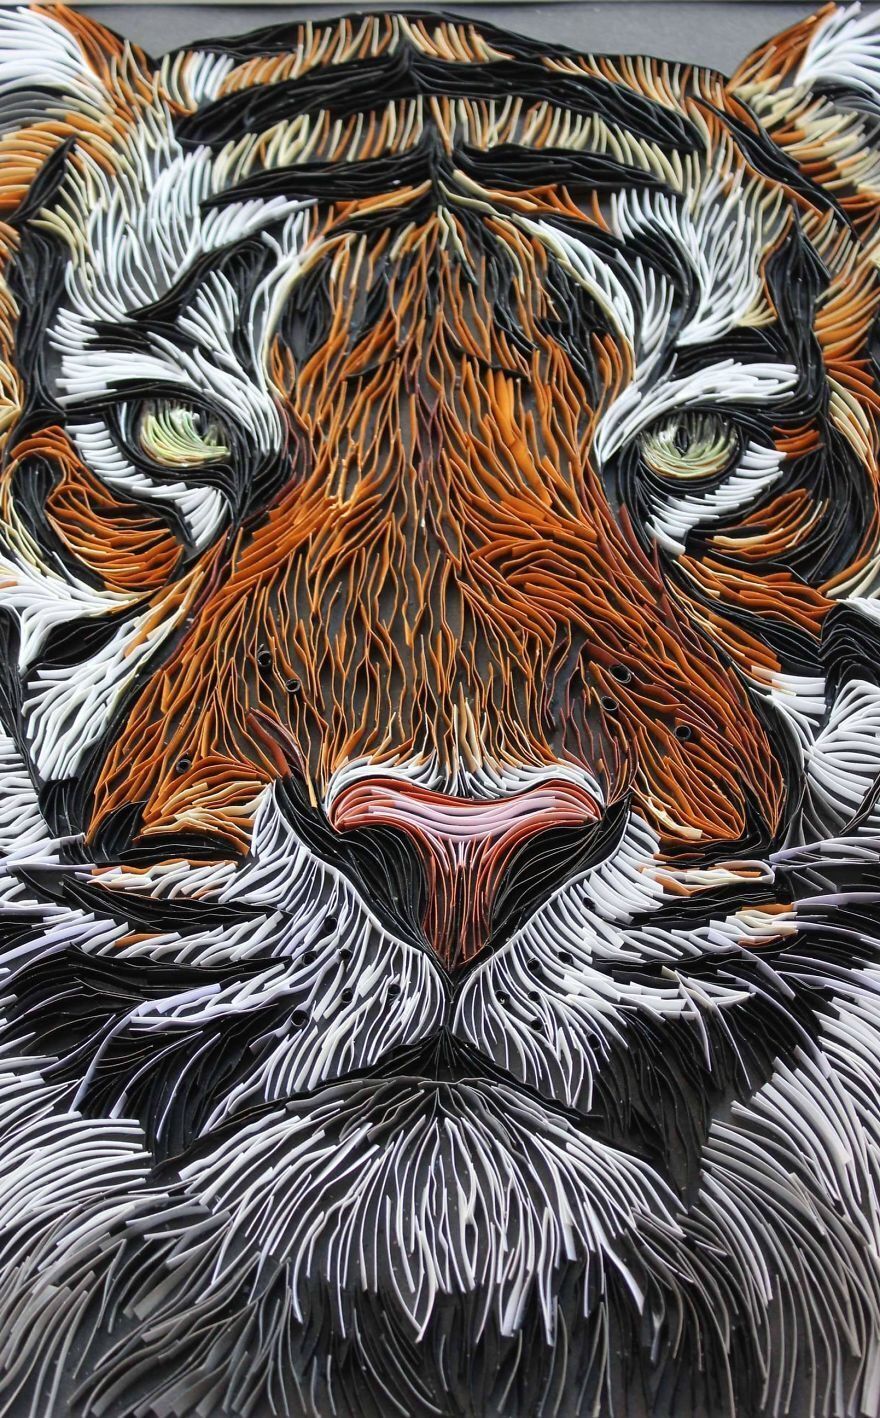 Quilling Paper Artwork Tiger by Bekah Stonefox